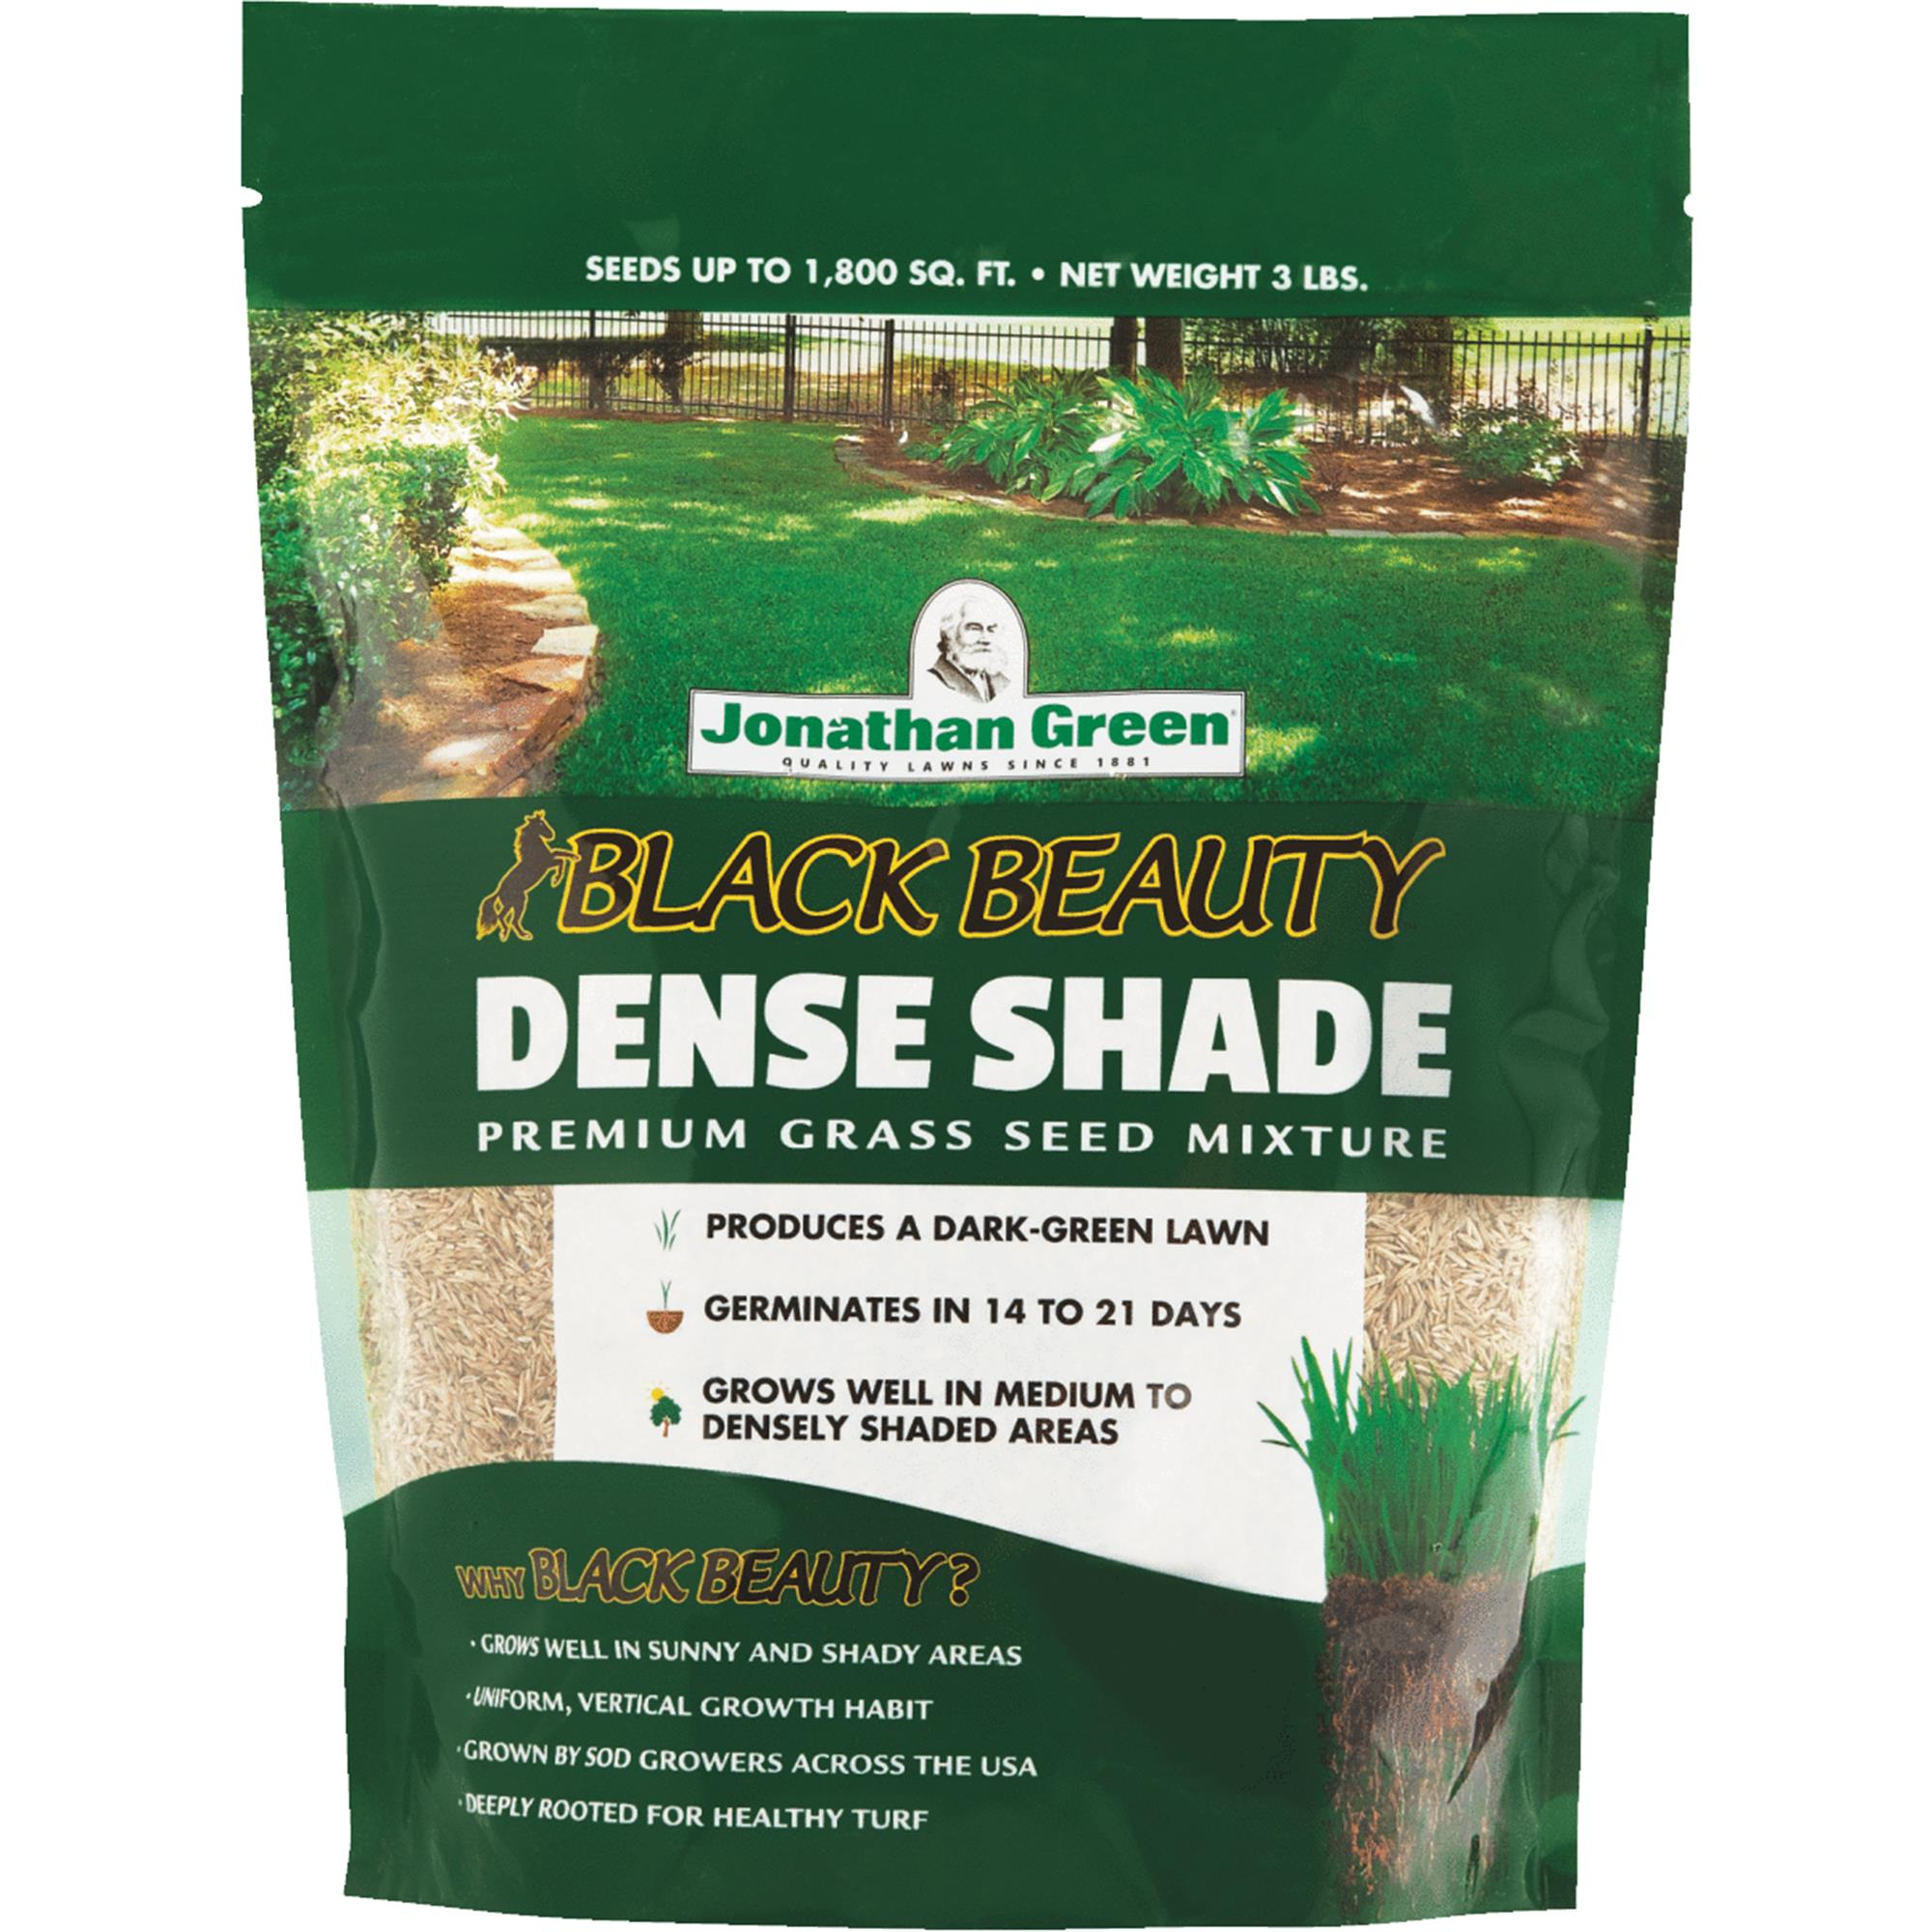 Jonathan Green Black Beauty Dense Shade Grass Seed Mixture